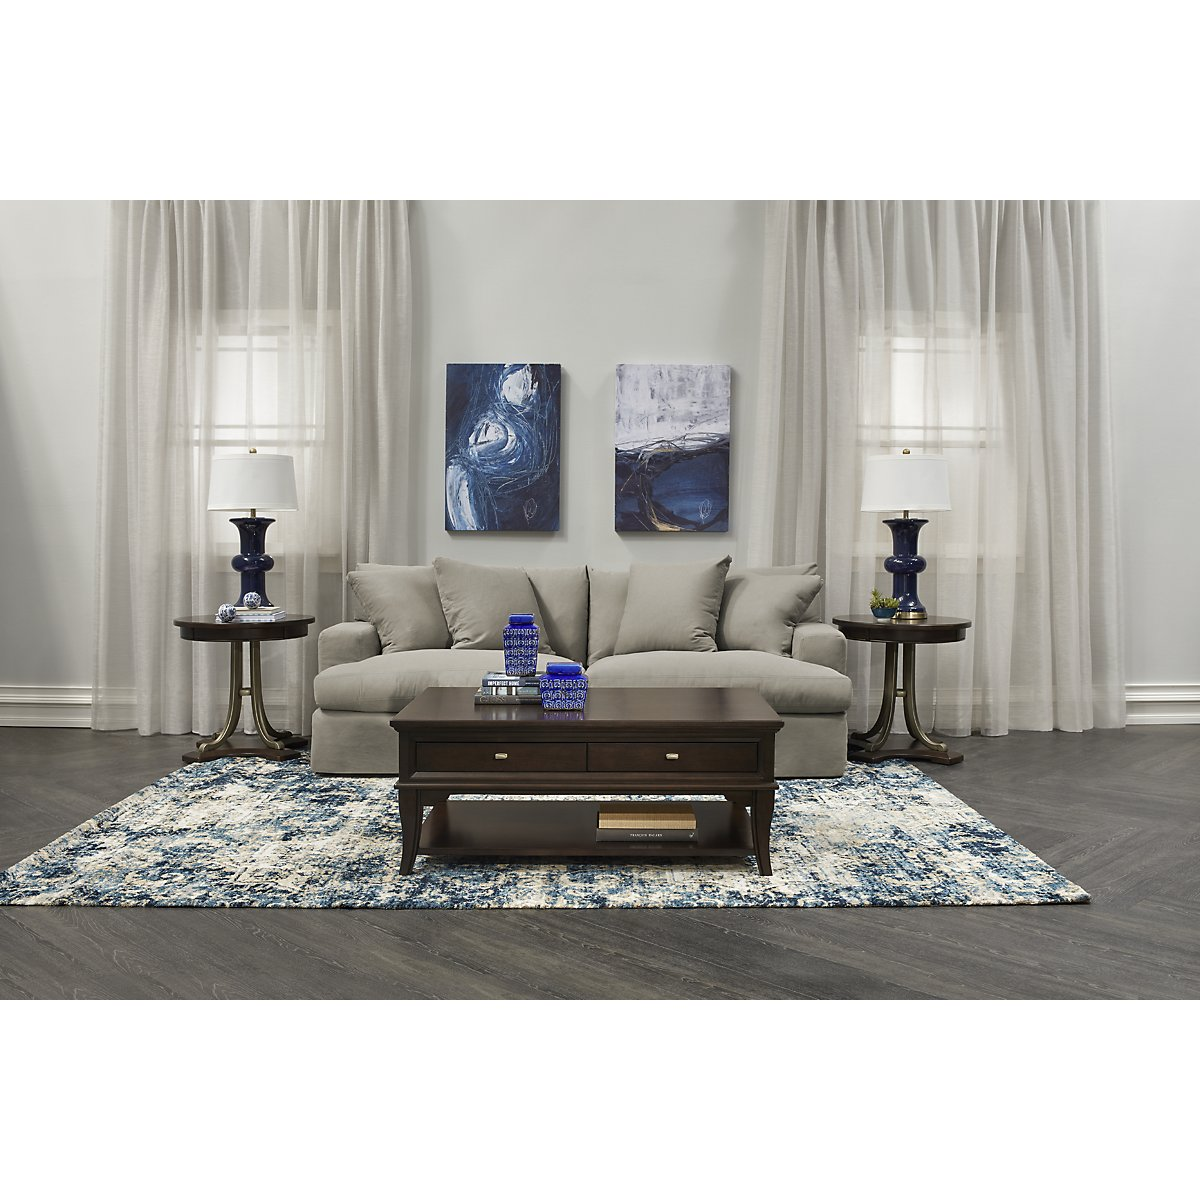 City Furniture Delilah Gray Fabric Living Room